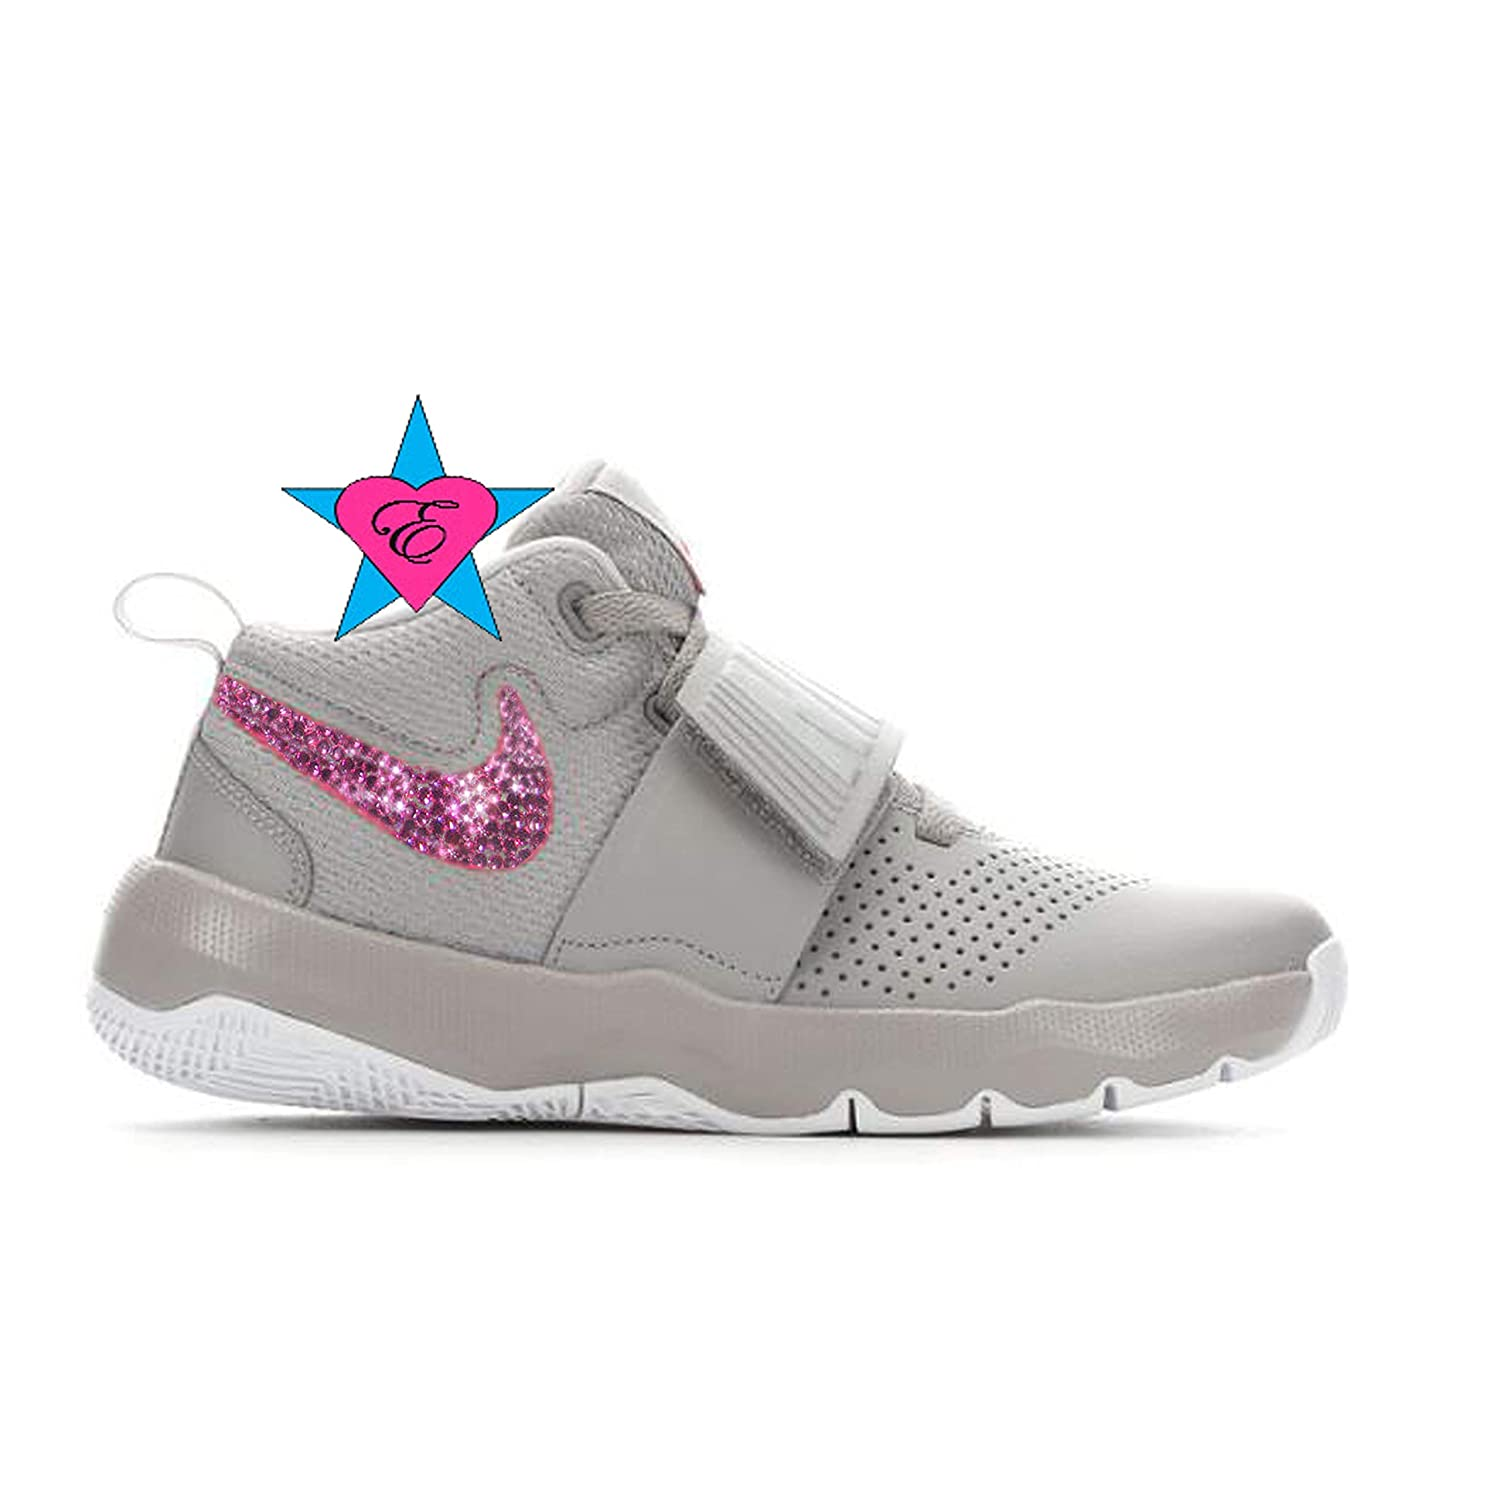 Bling Shoes for Girls | Bedazzled Gray N I K E Team Hustle D8 | 3.5-7 | Basketball Shoes